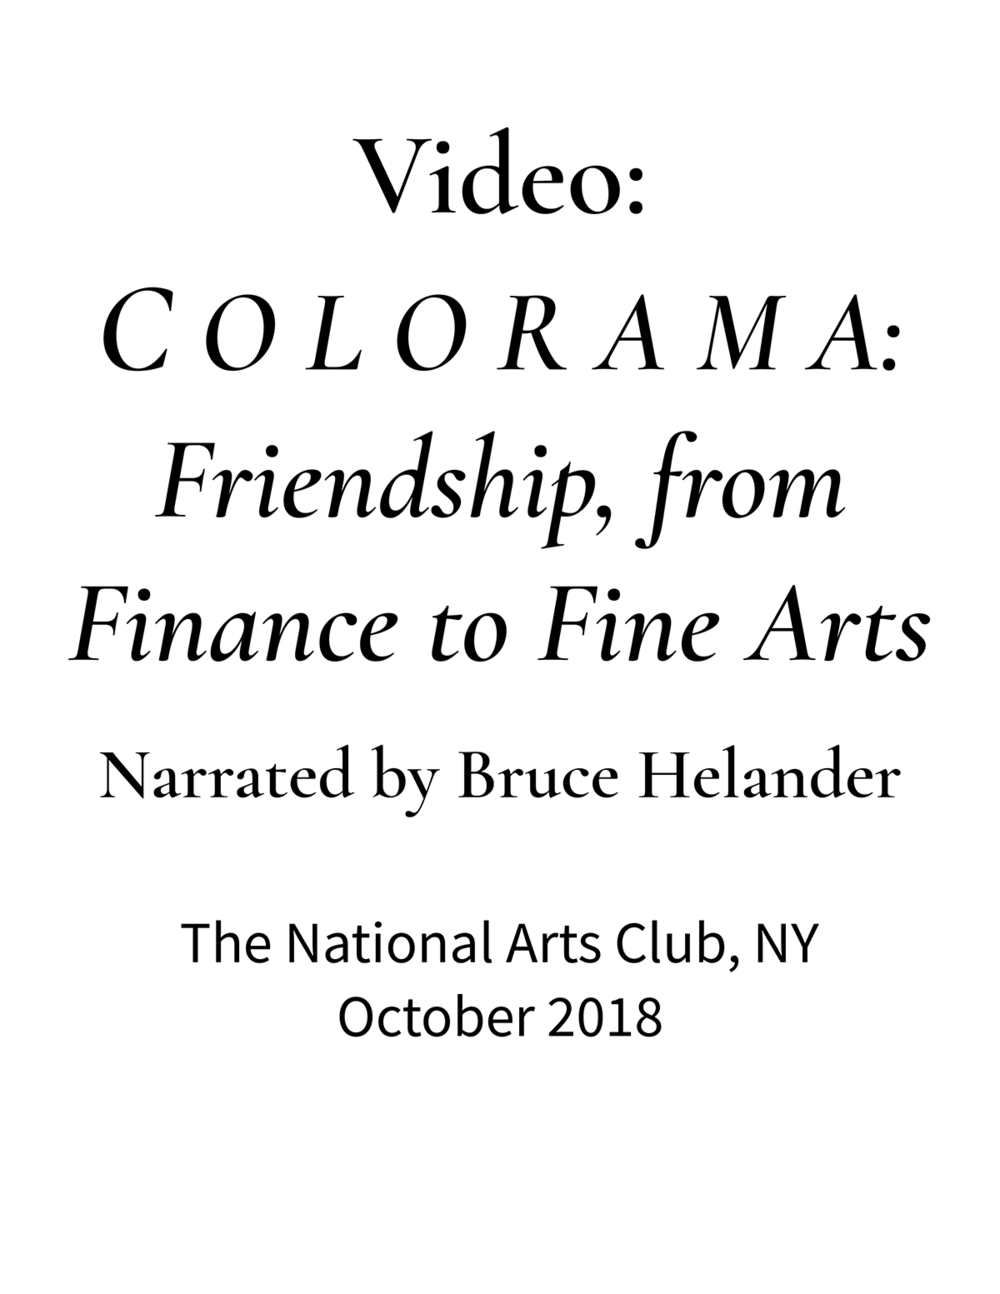 The National Arts Club | C O L O R A M A